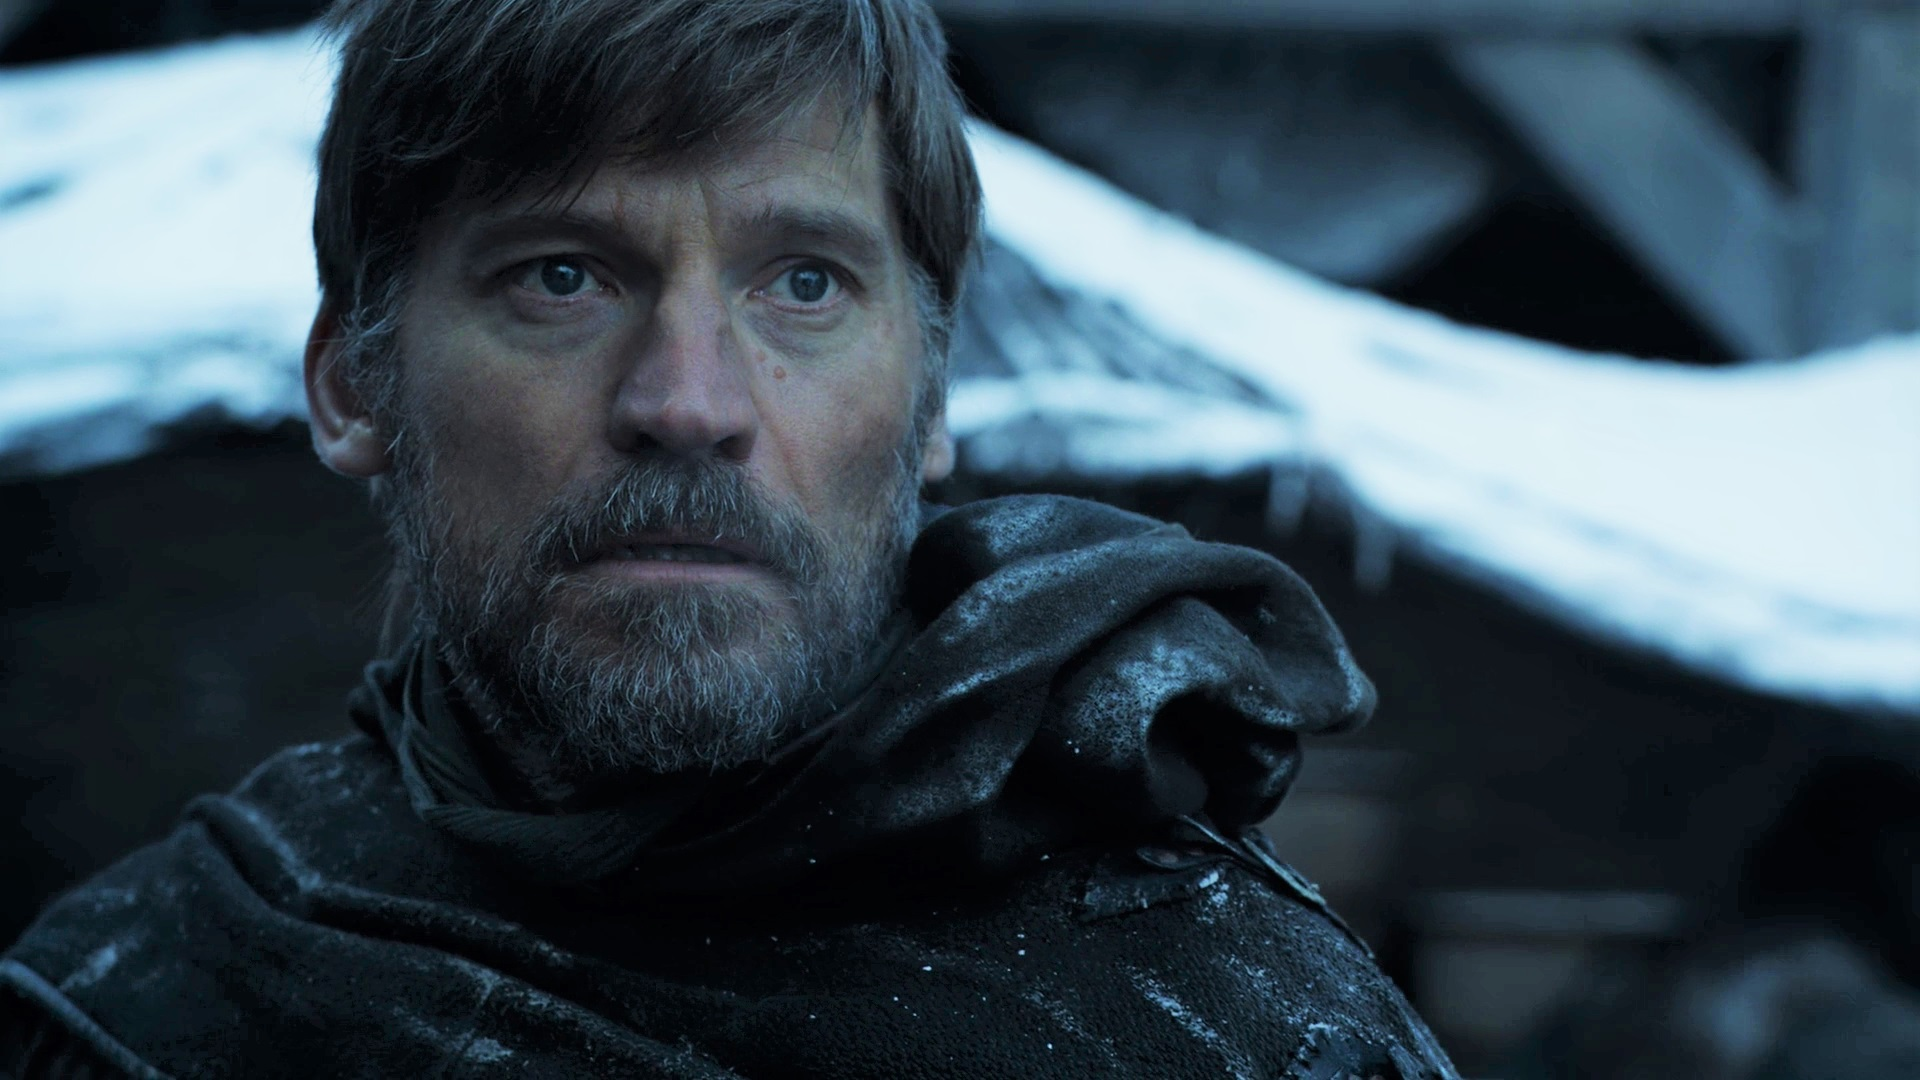 Jaime Winterfell Season 8 801 3